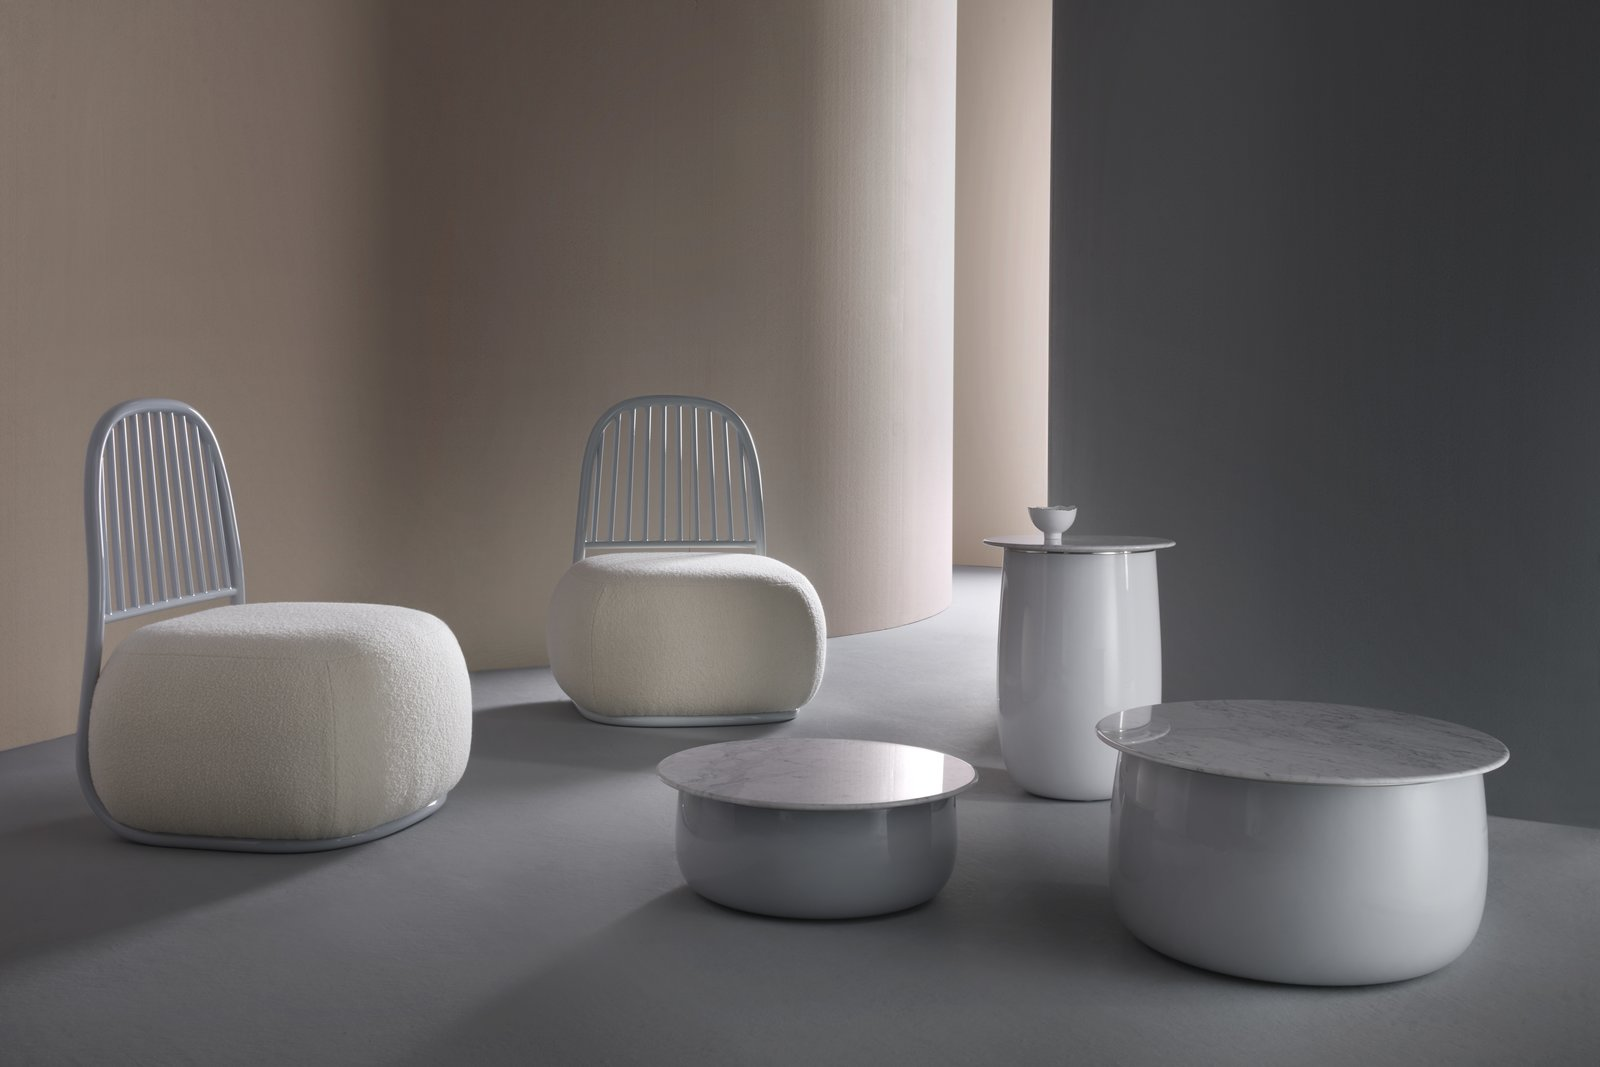 Following up on three acclaimed collections by Damien Langlois-Meurinne, Jaime Hayon, and Nika Zupanc, European furniture brand Sé celebrated its tenth anniversary with Collection IV by Swiss-based designer Ini Archibong.